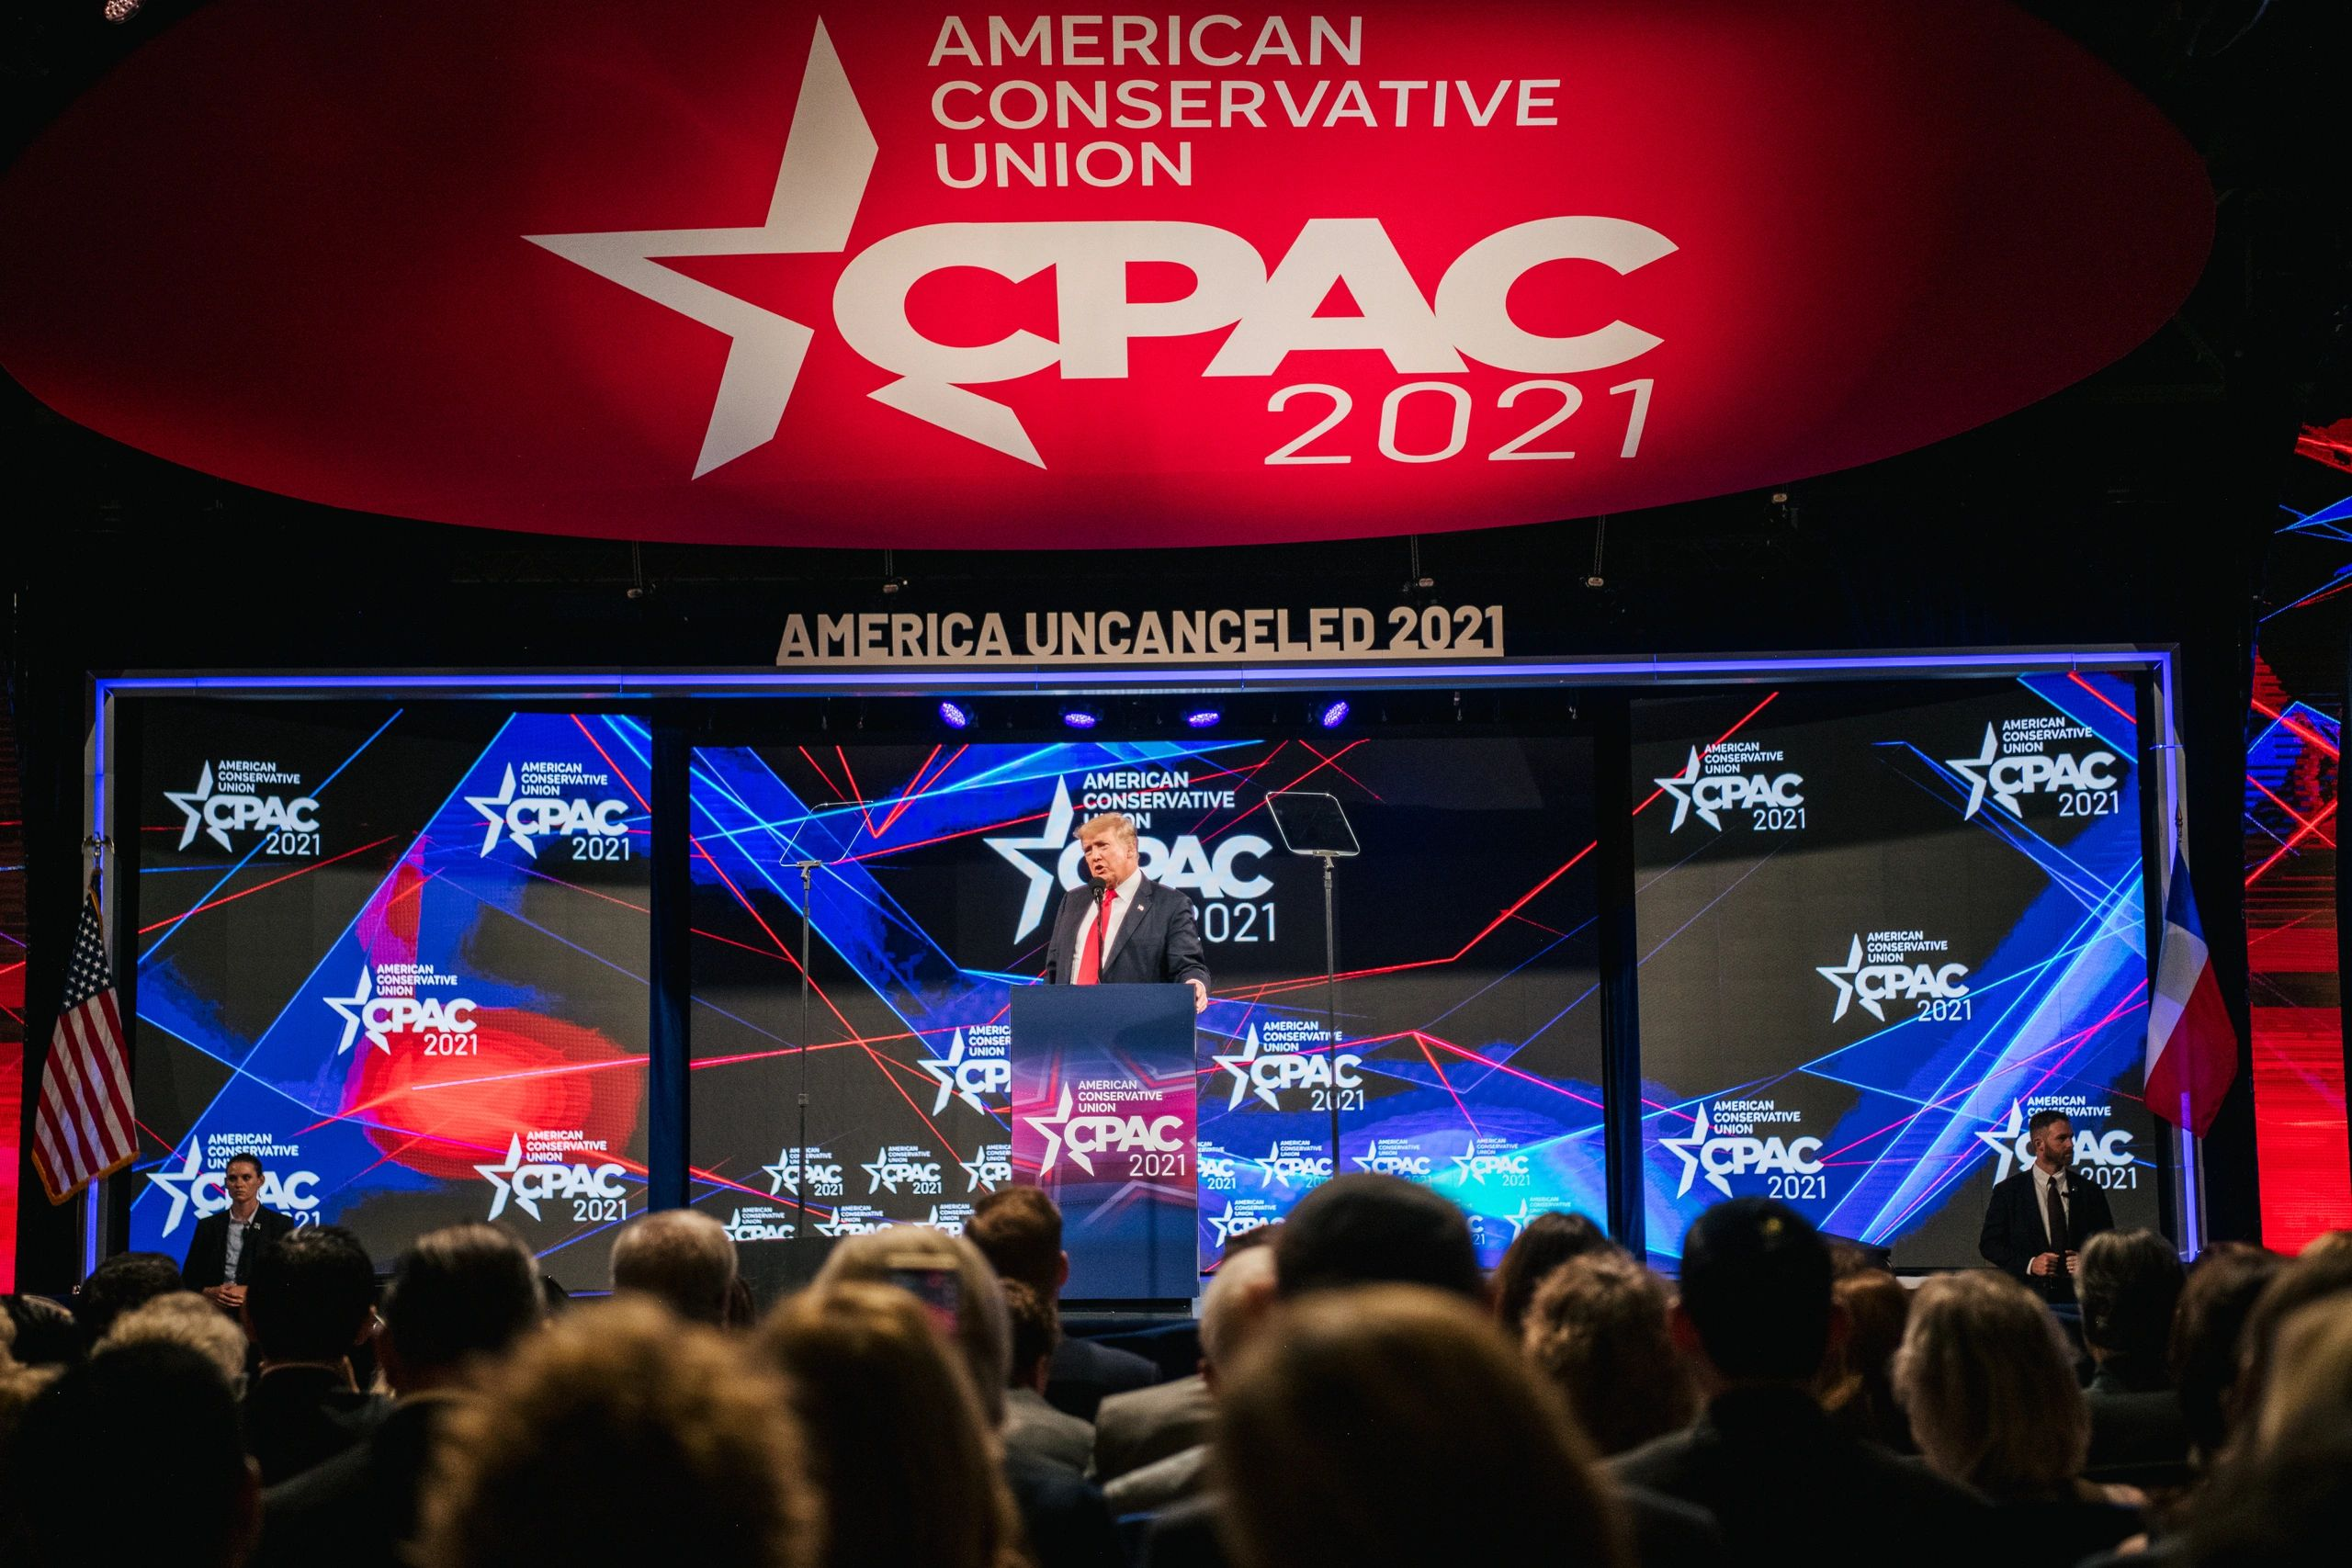 President Trump receives record support at CPAC